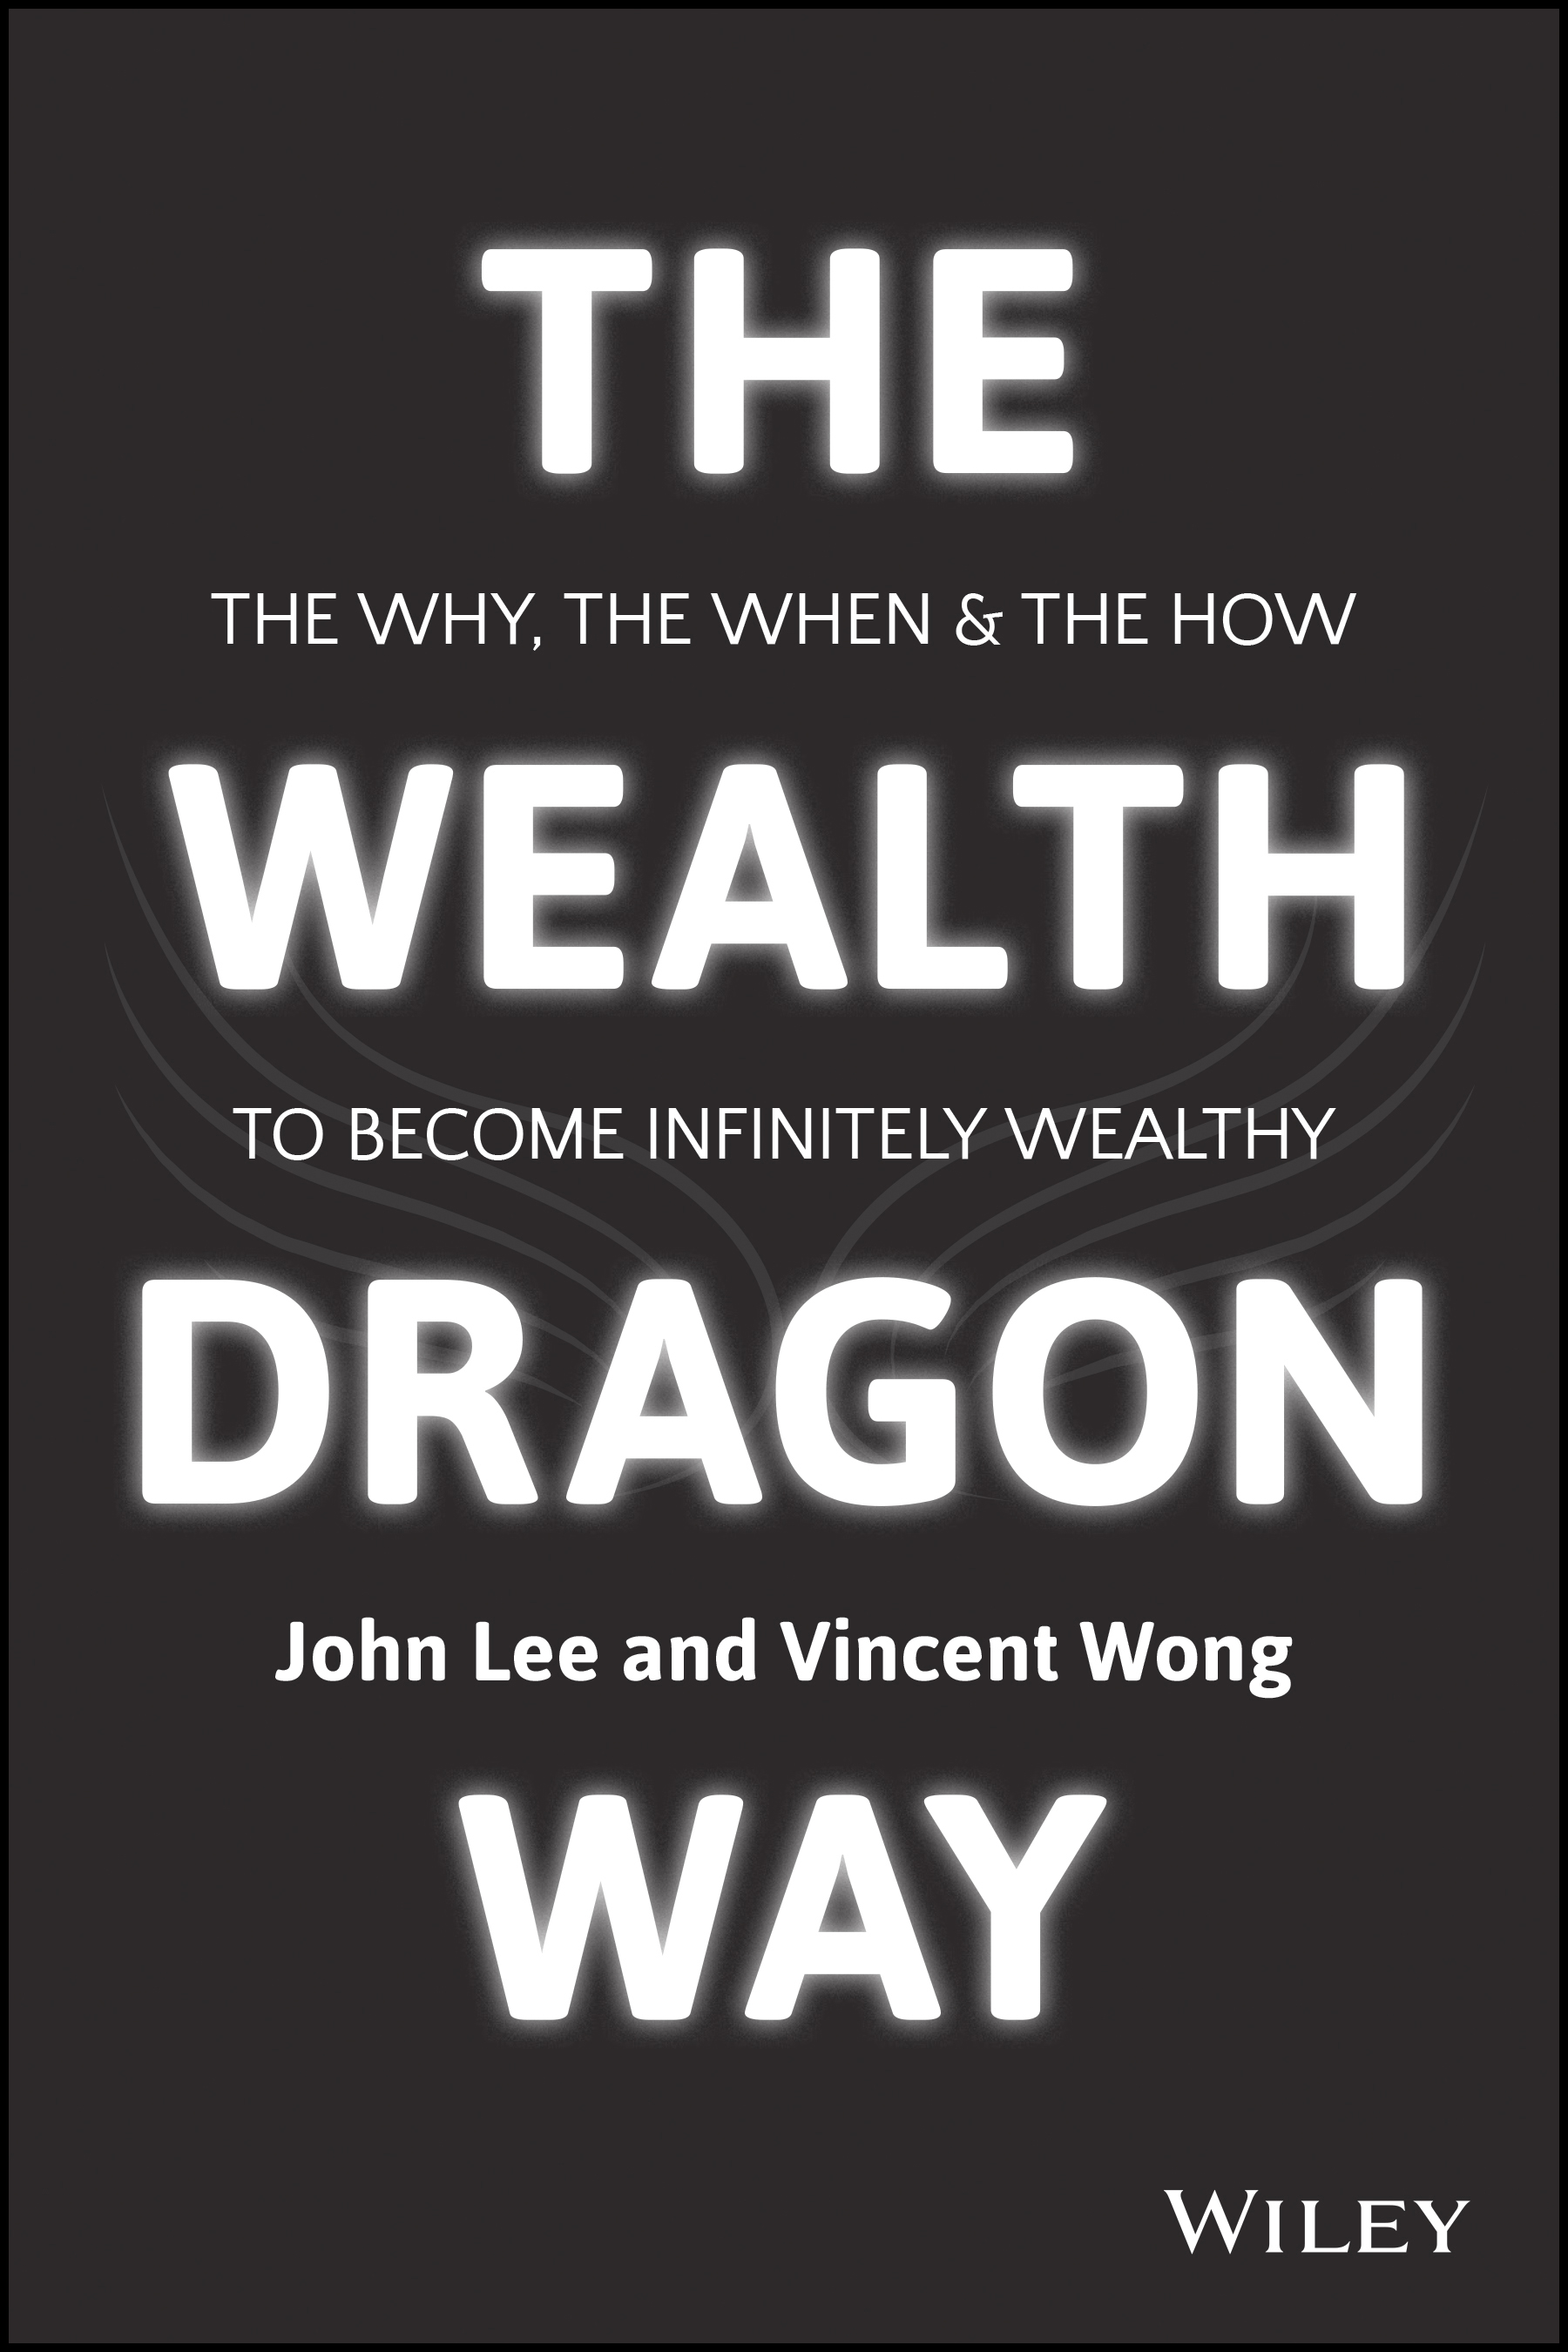 [Book Parade] The Wealth Dragon Way